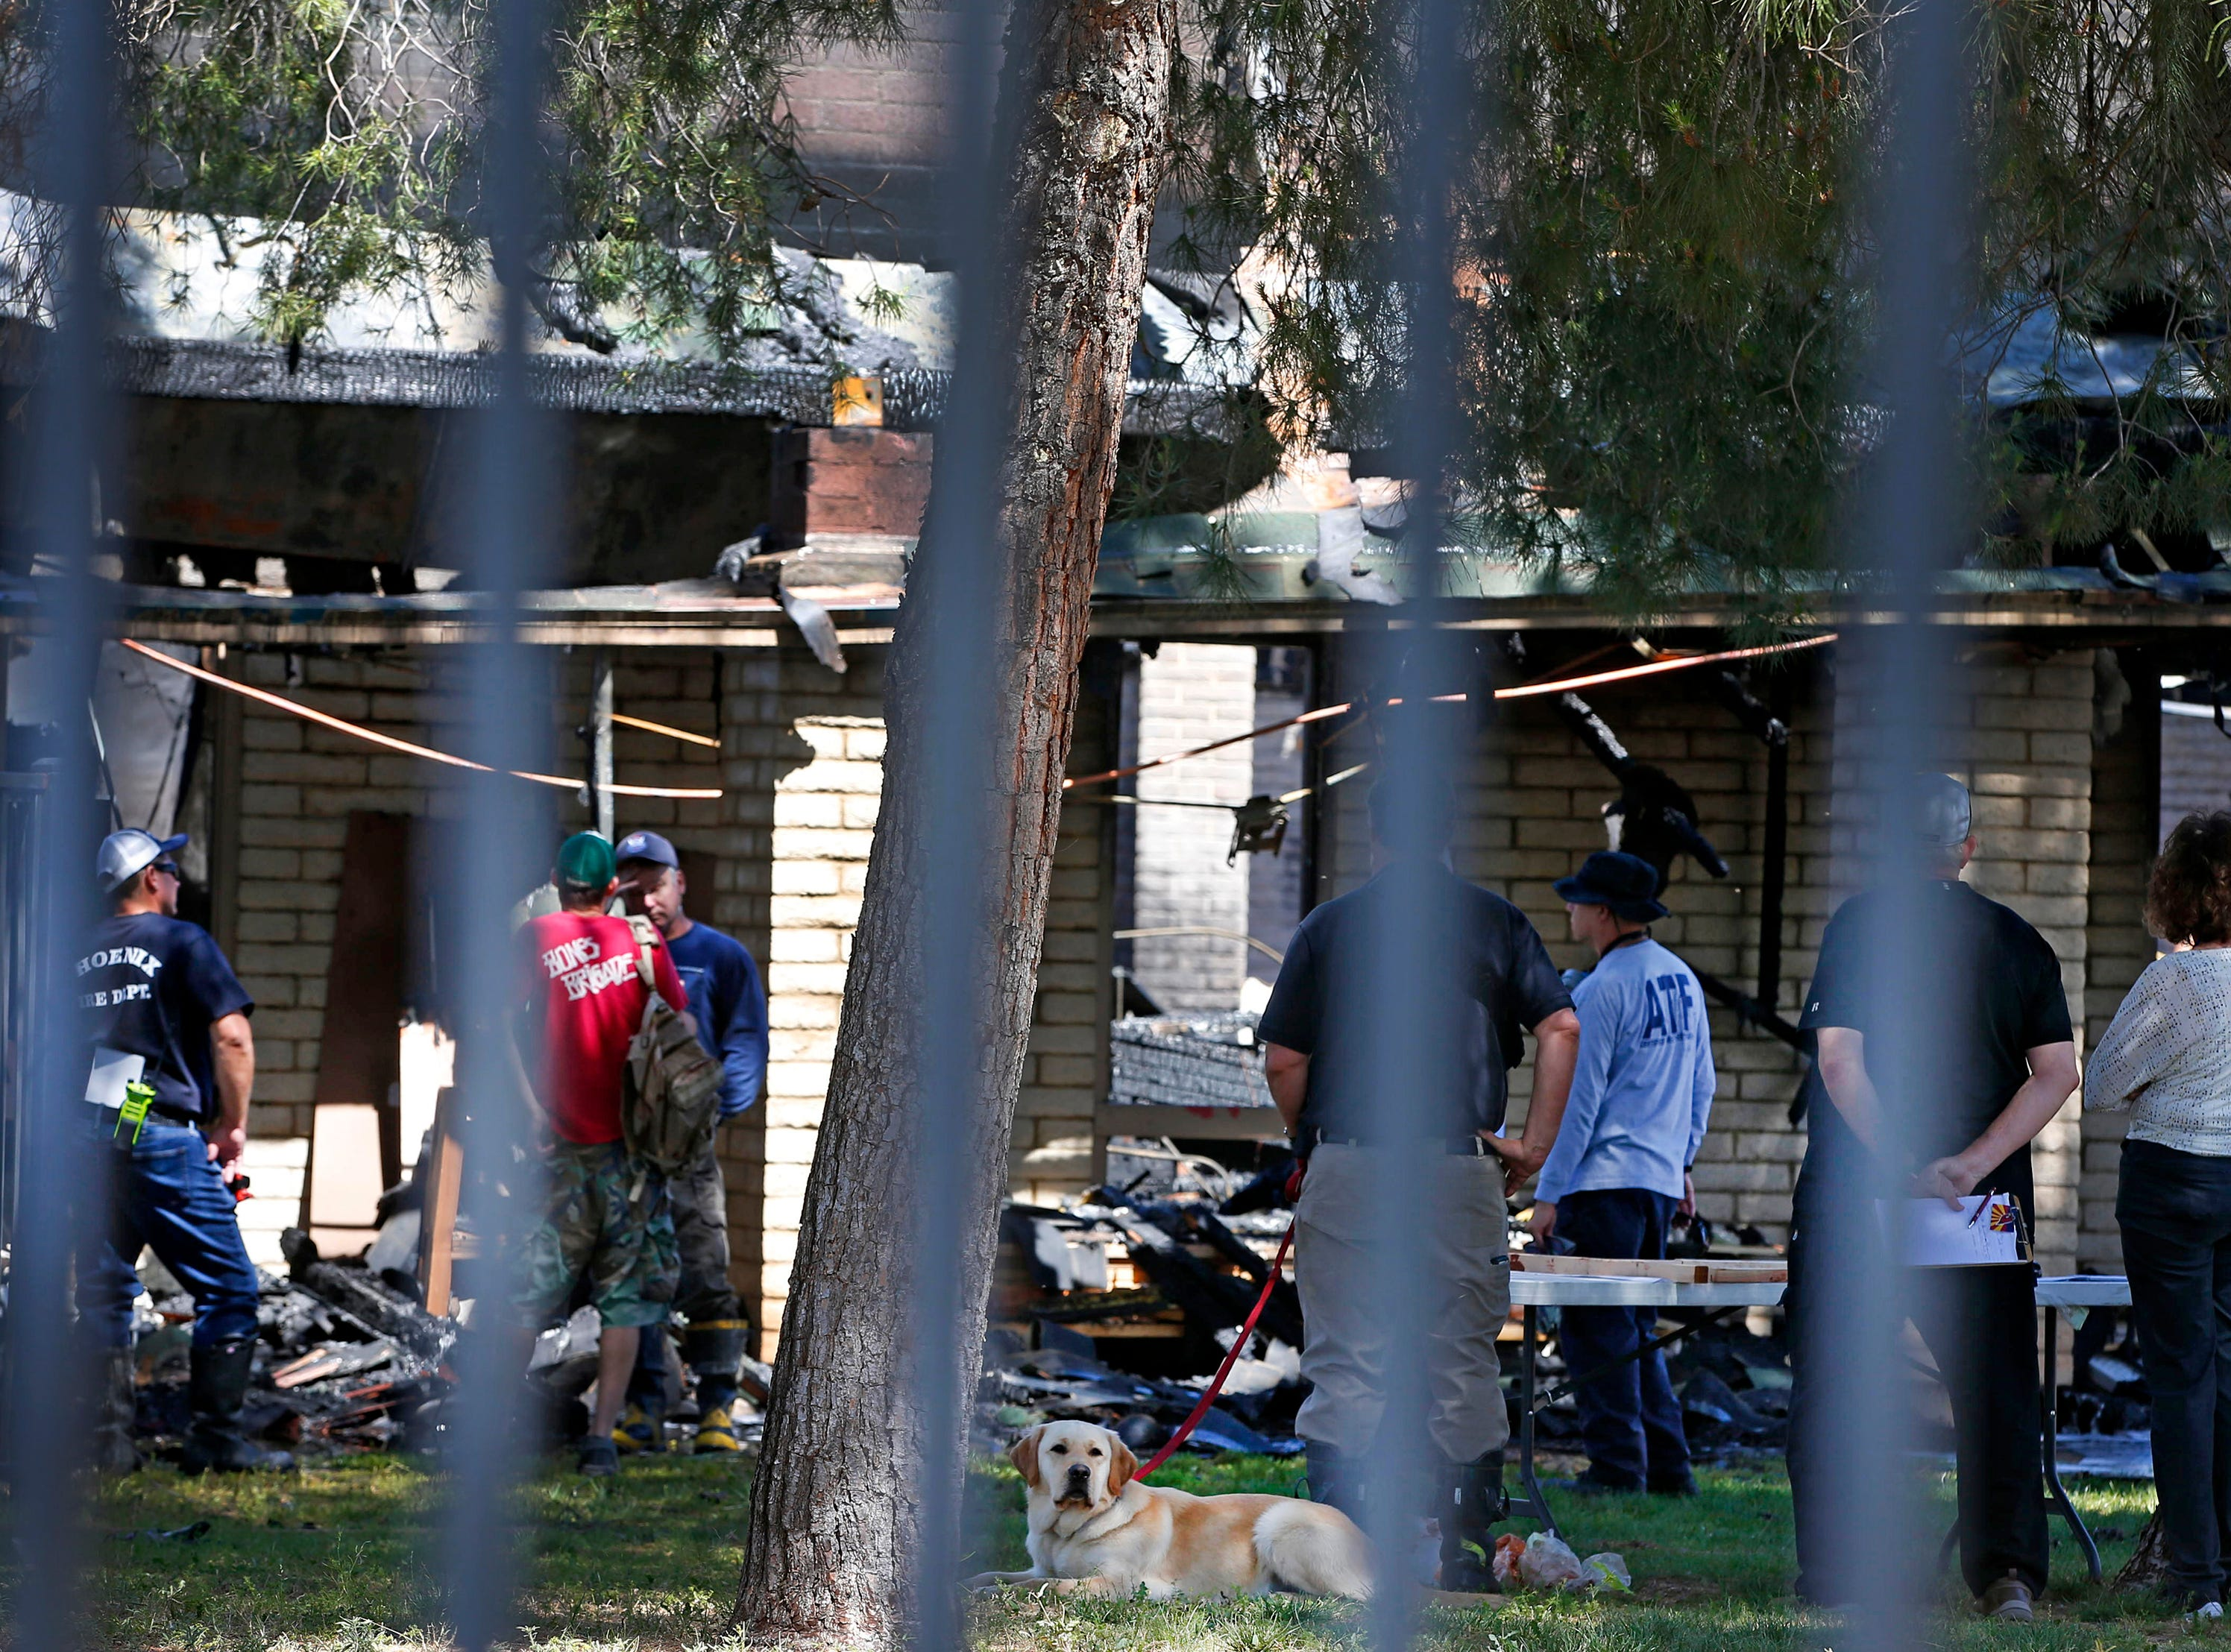 Investigators work the scene at St. Joseph Catholic Church in Phoenix on May 1, 2019, after a fire destroyed most of the church.